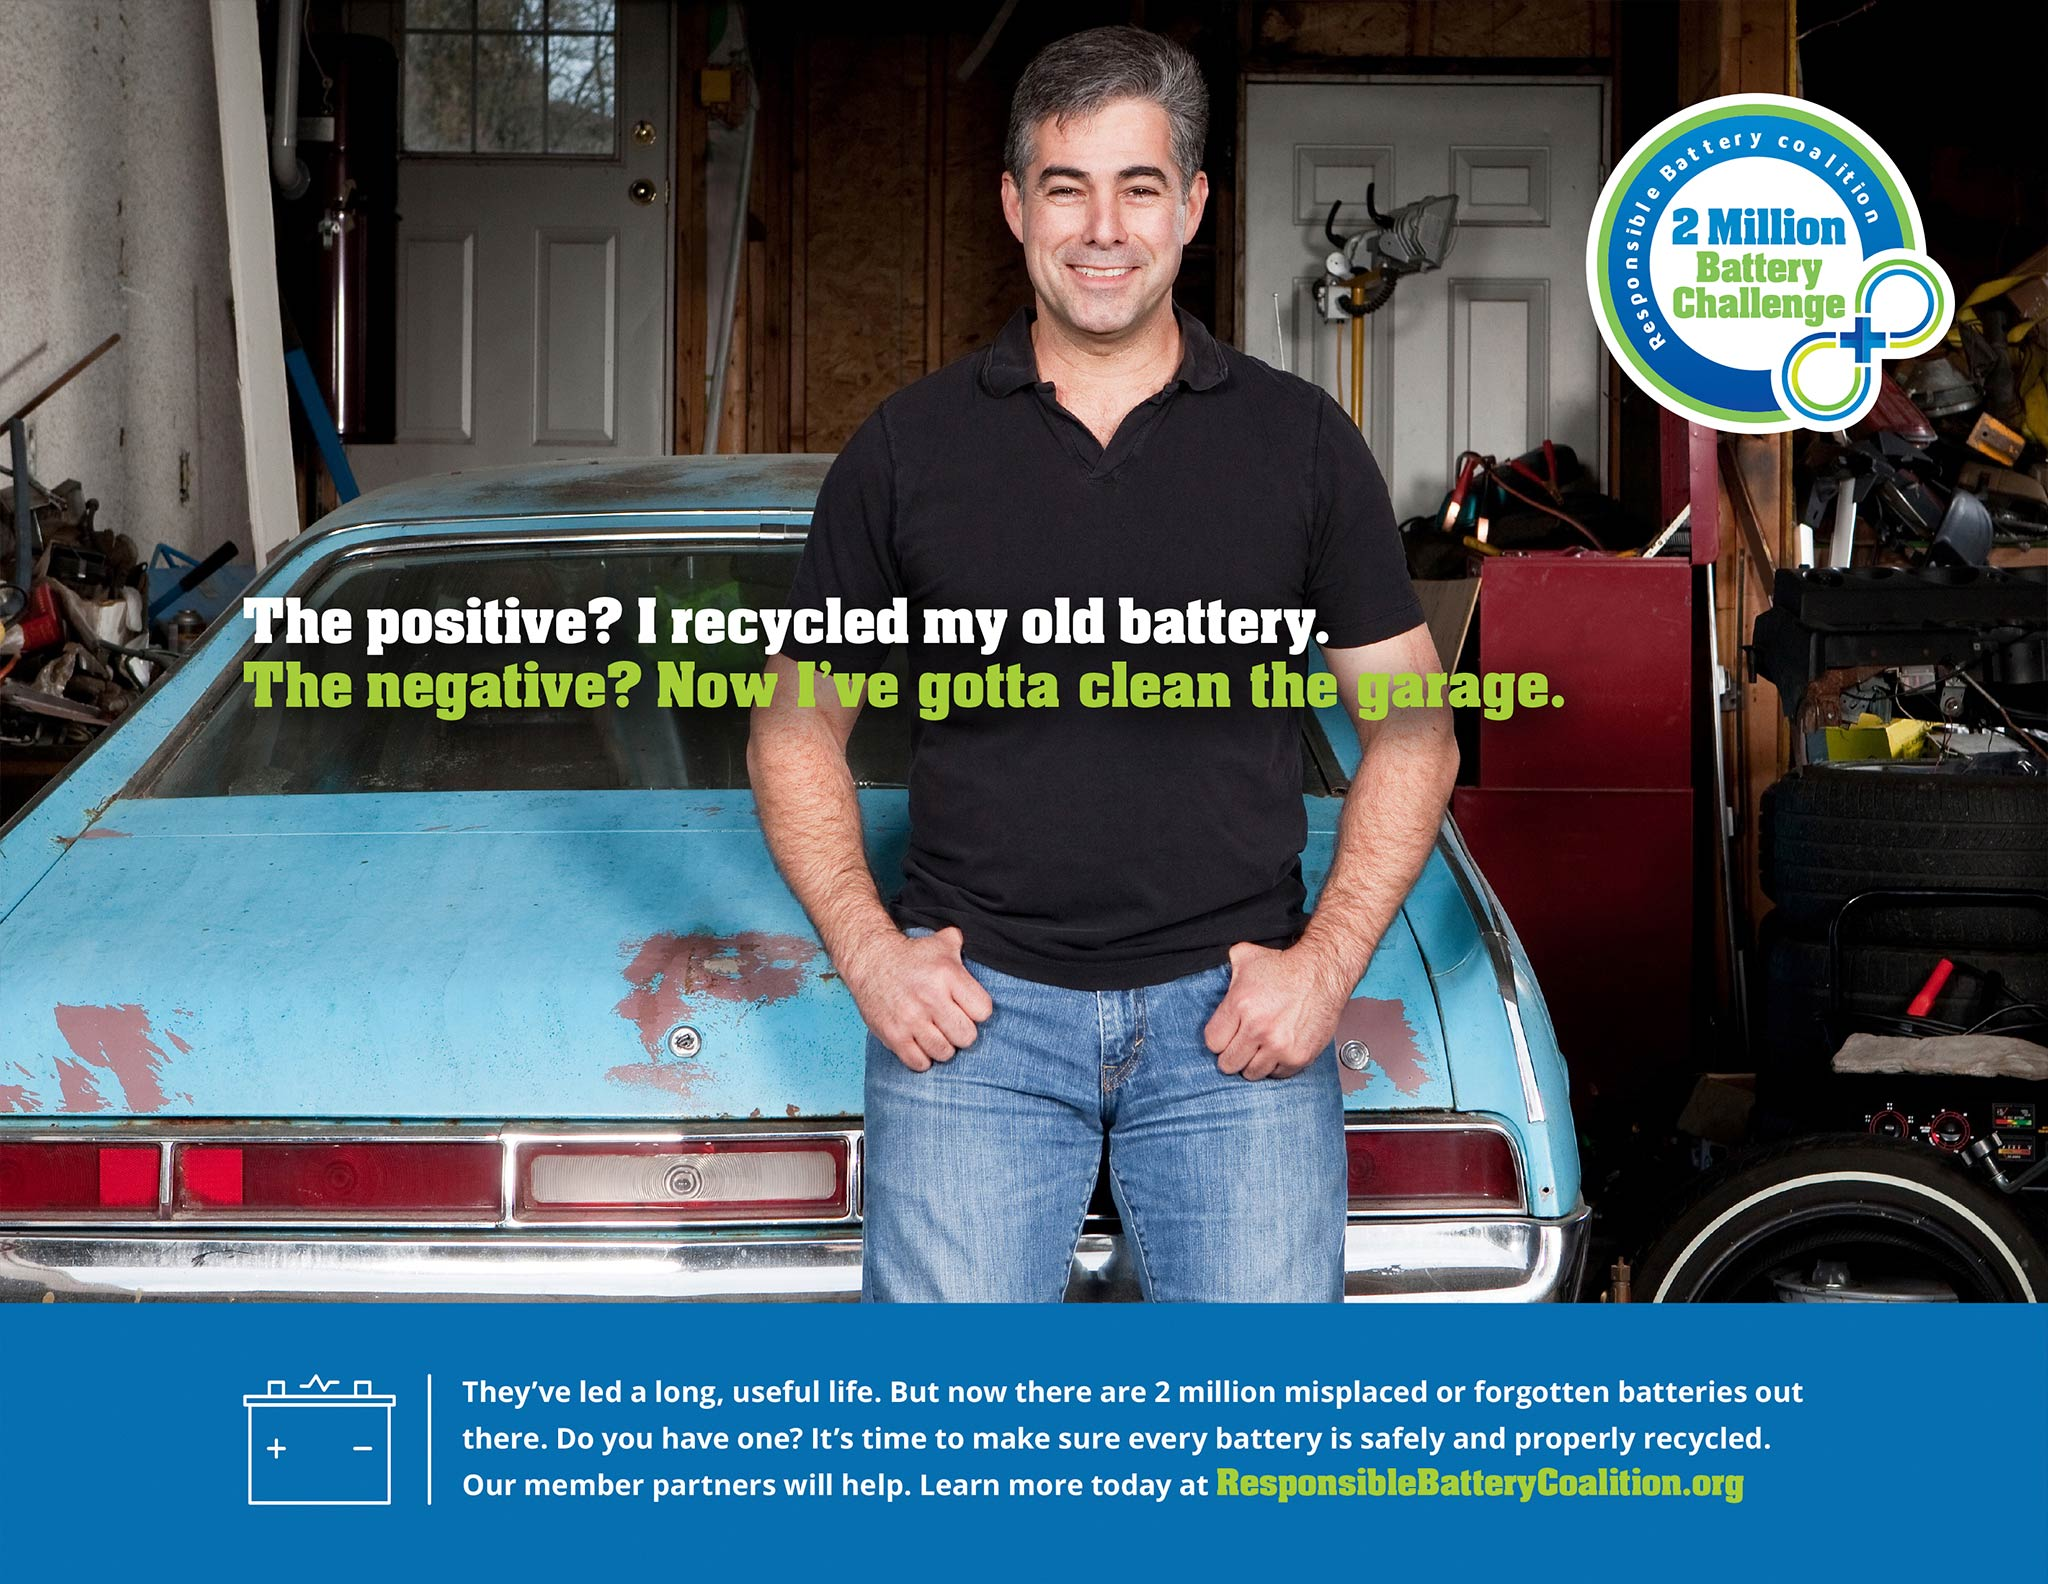 Responsible Battery Coalition, 2 Million Battery Challenge Print Ad